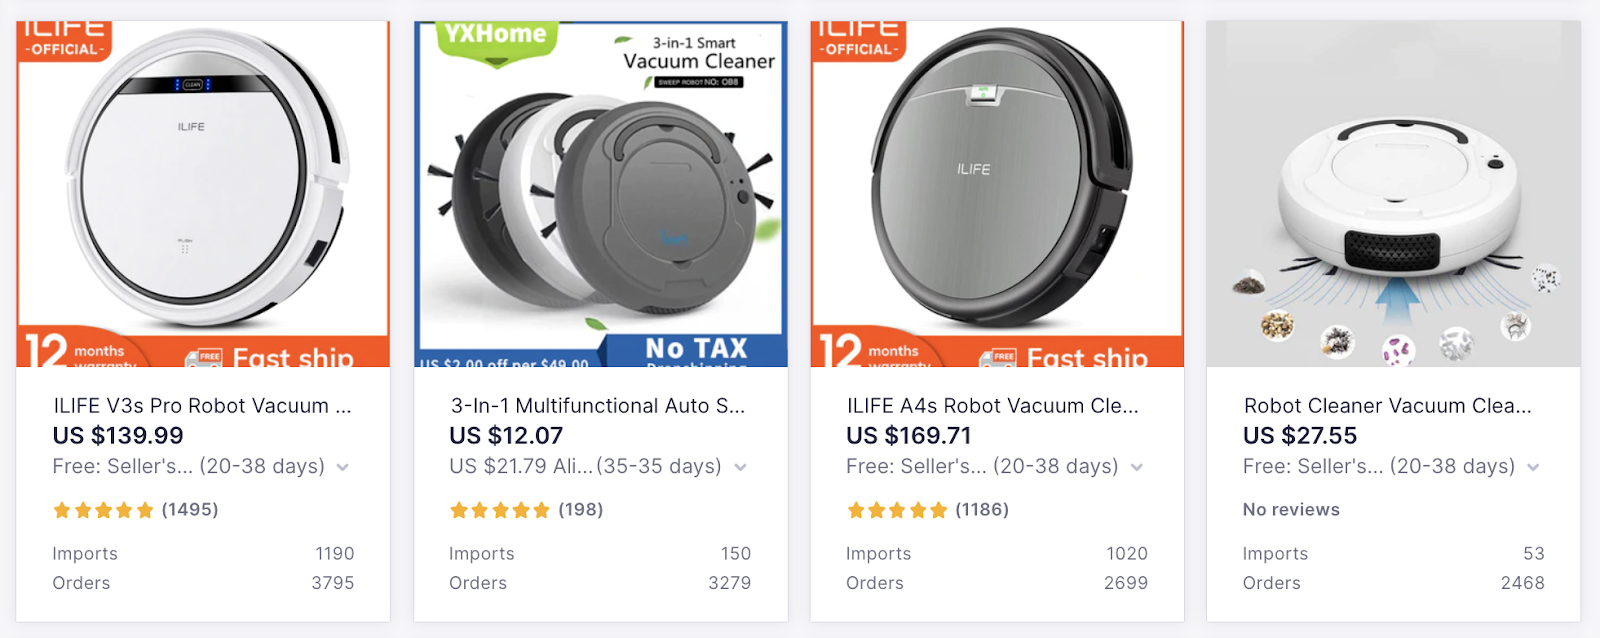 Best Products to Sell Online with Oberlo: Robotic Vacuum